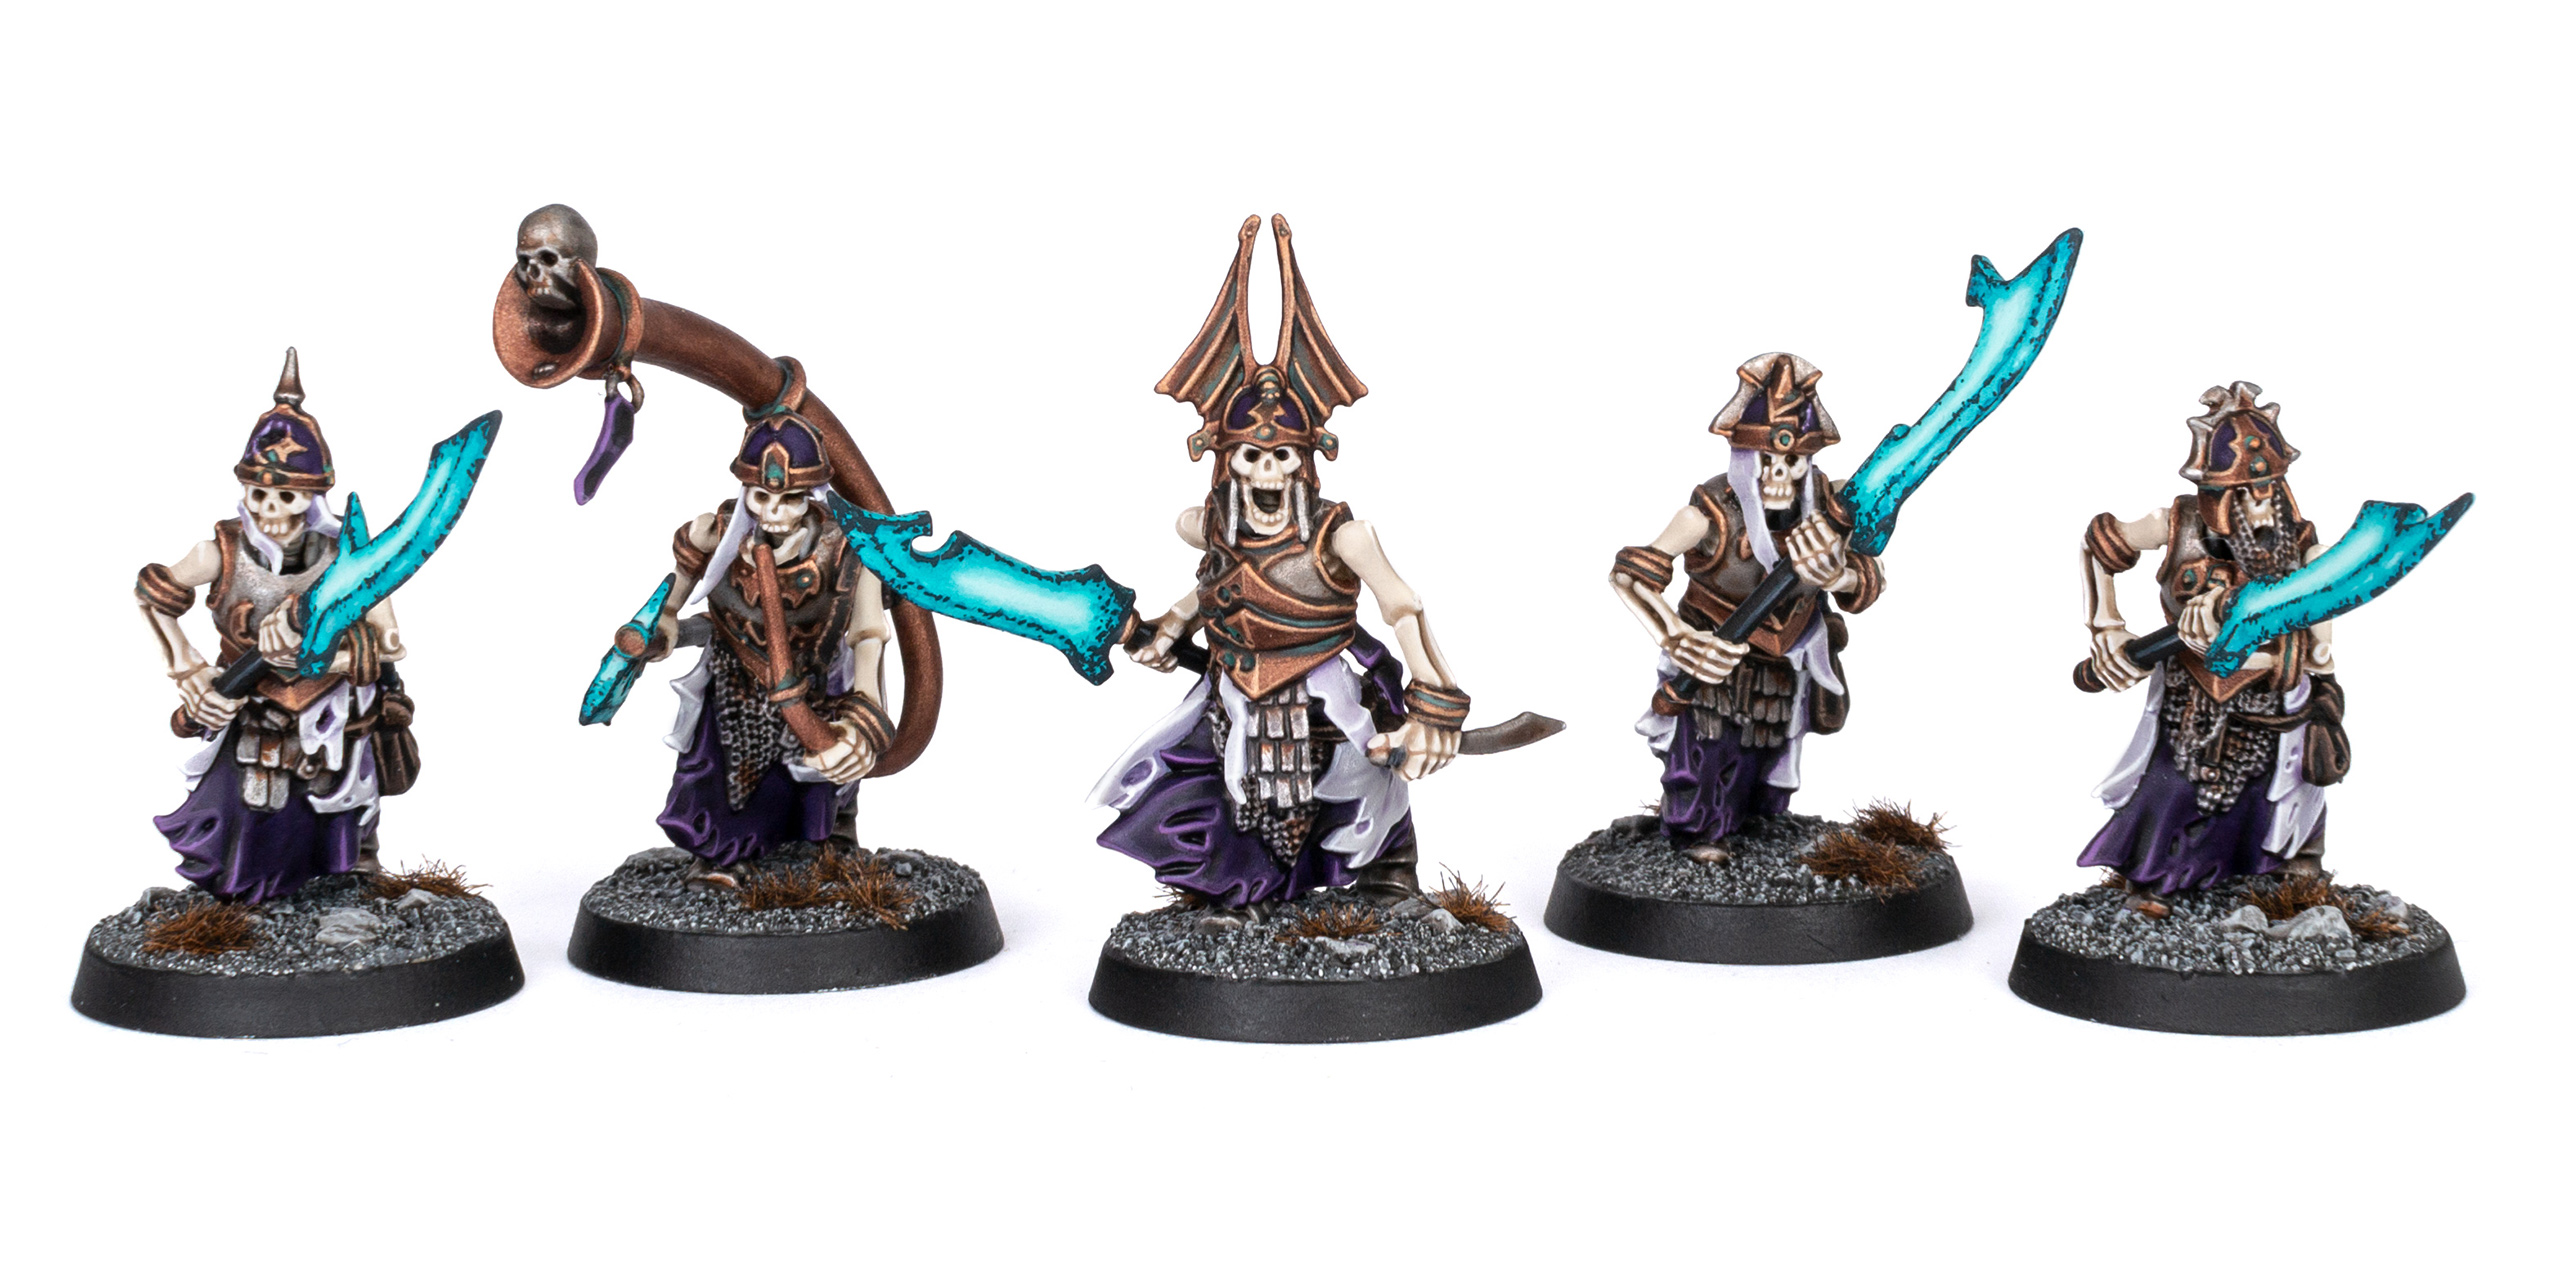 Five Grave Guard with Great Wight Blades painted by Stahly